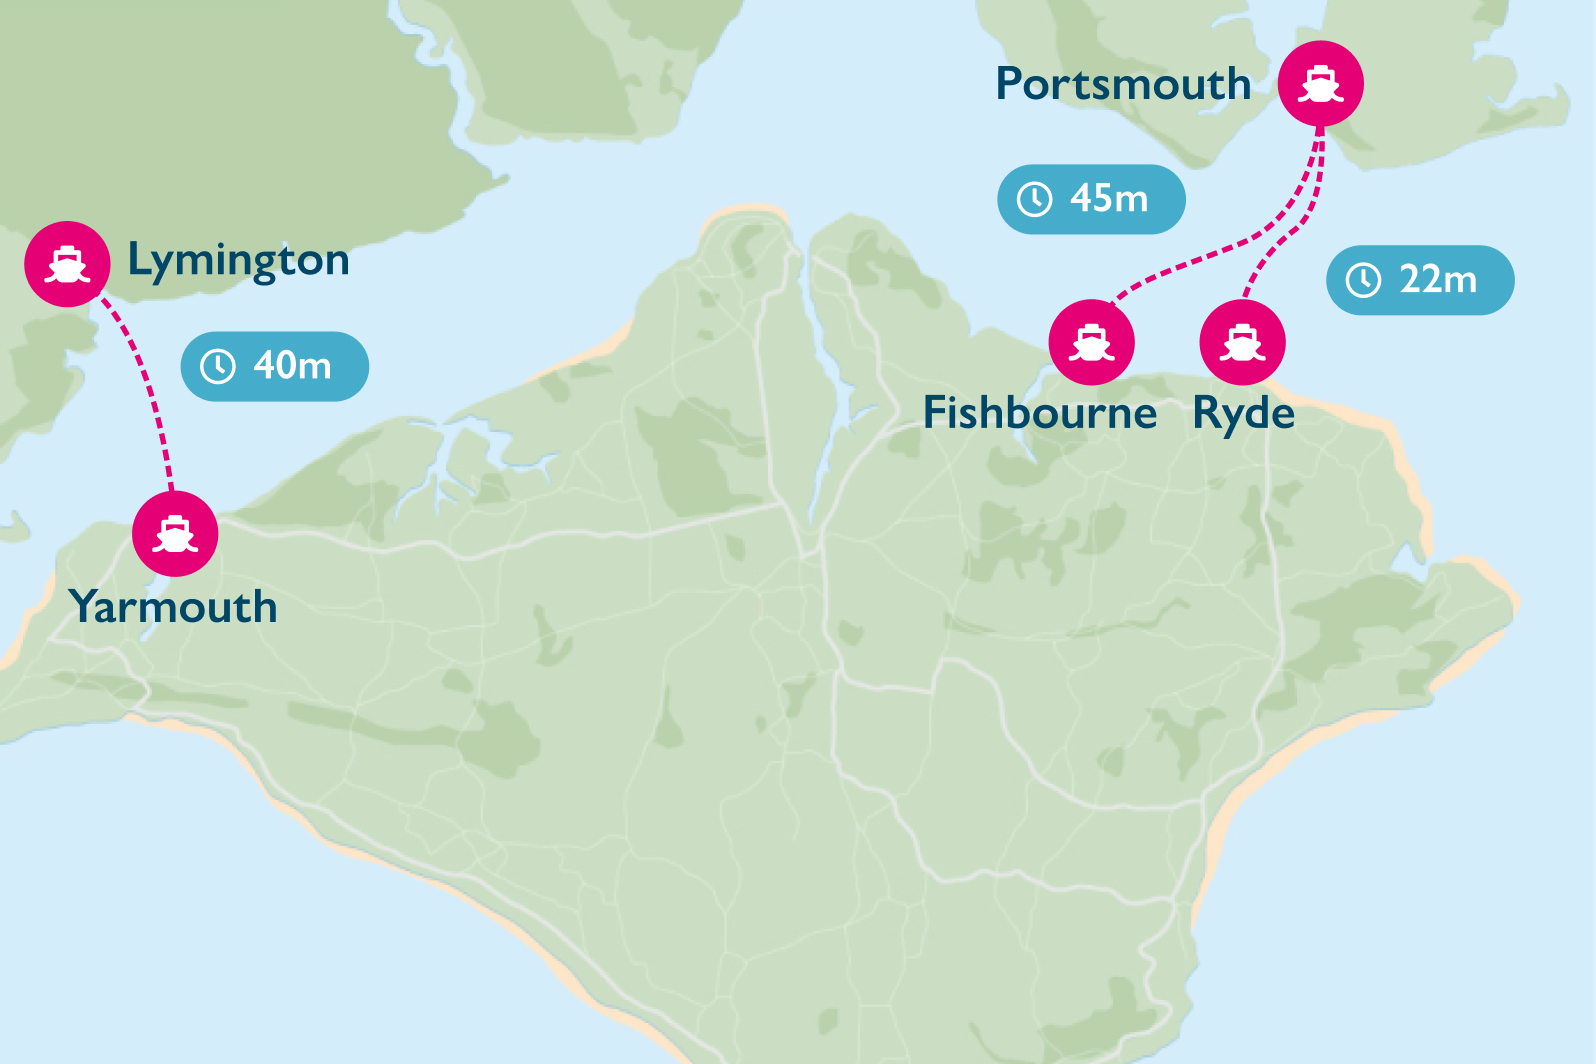 Map showing Wightlink routes